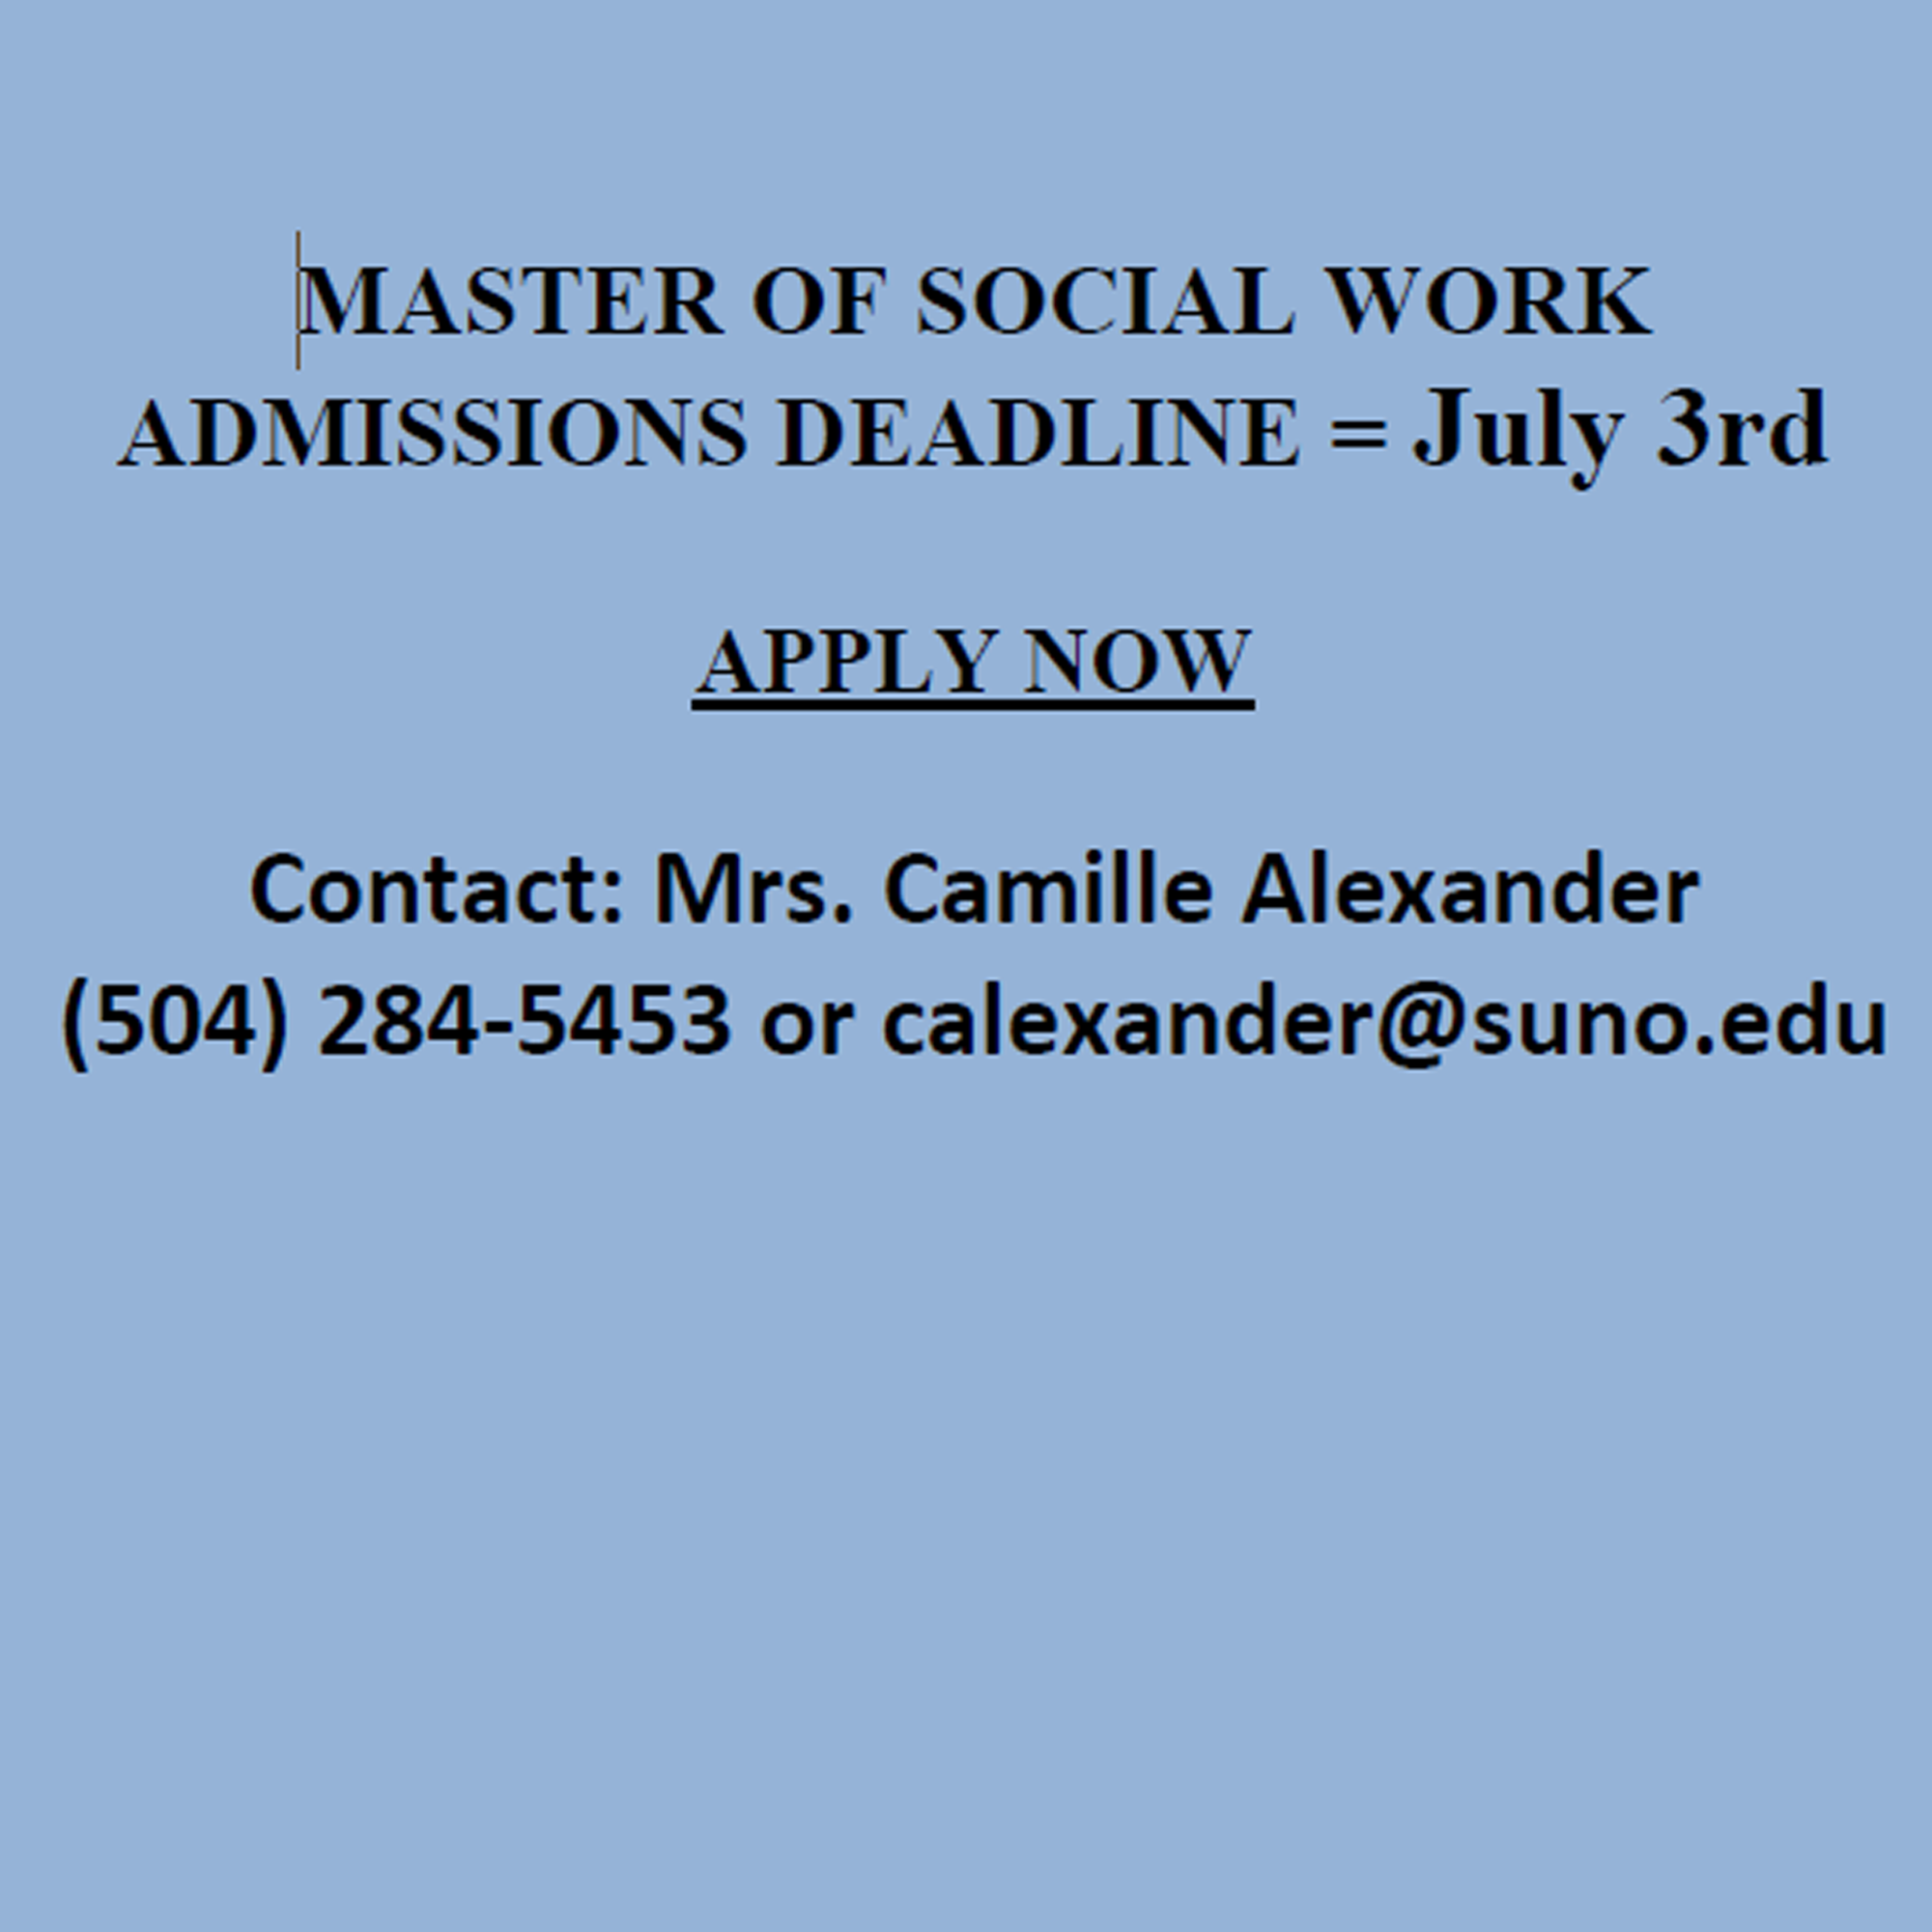 Master of Social Work Admissions Deadline Extended